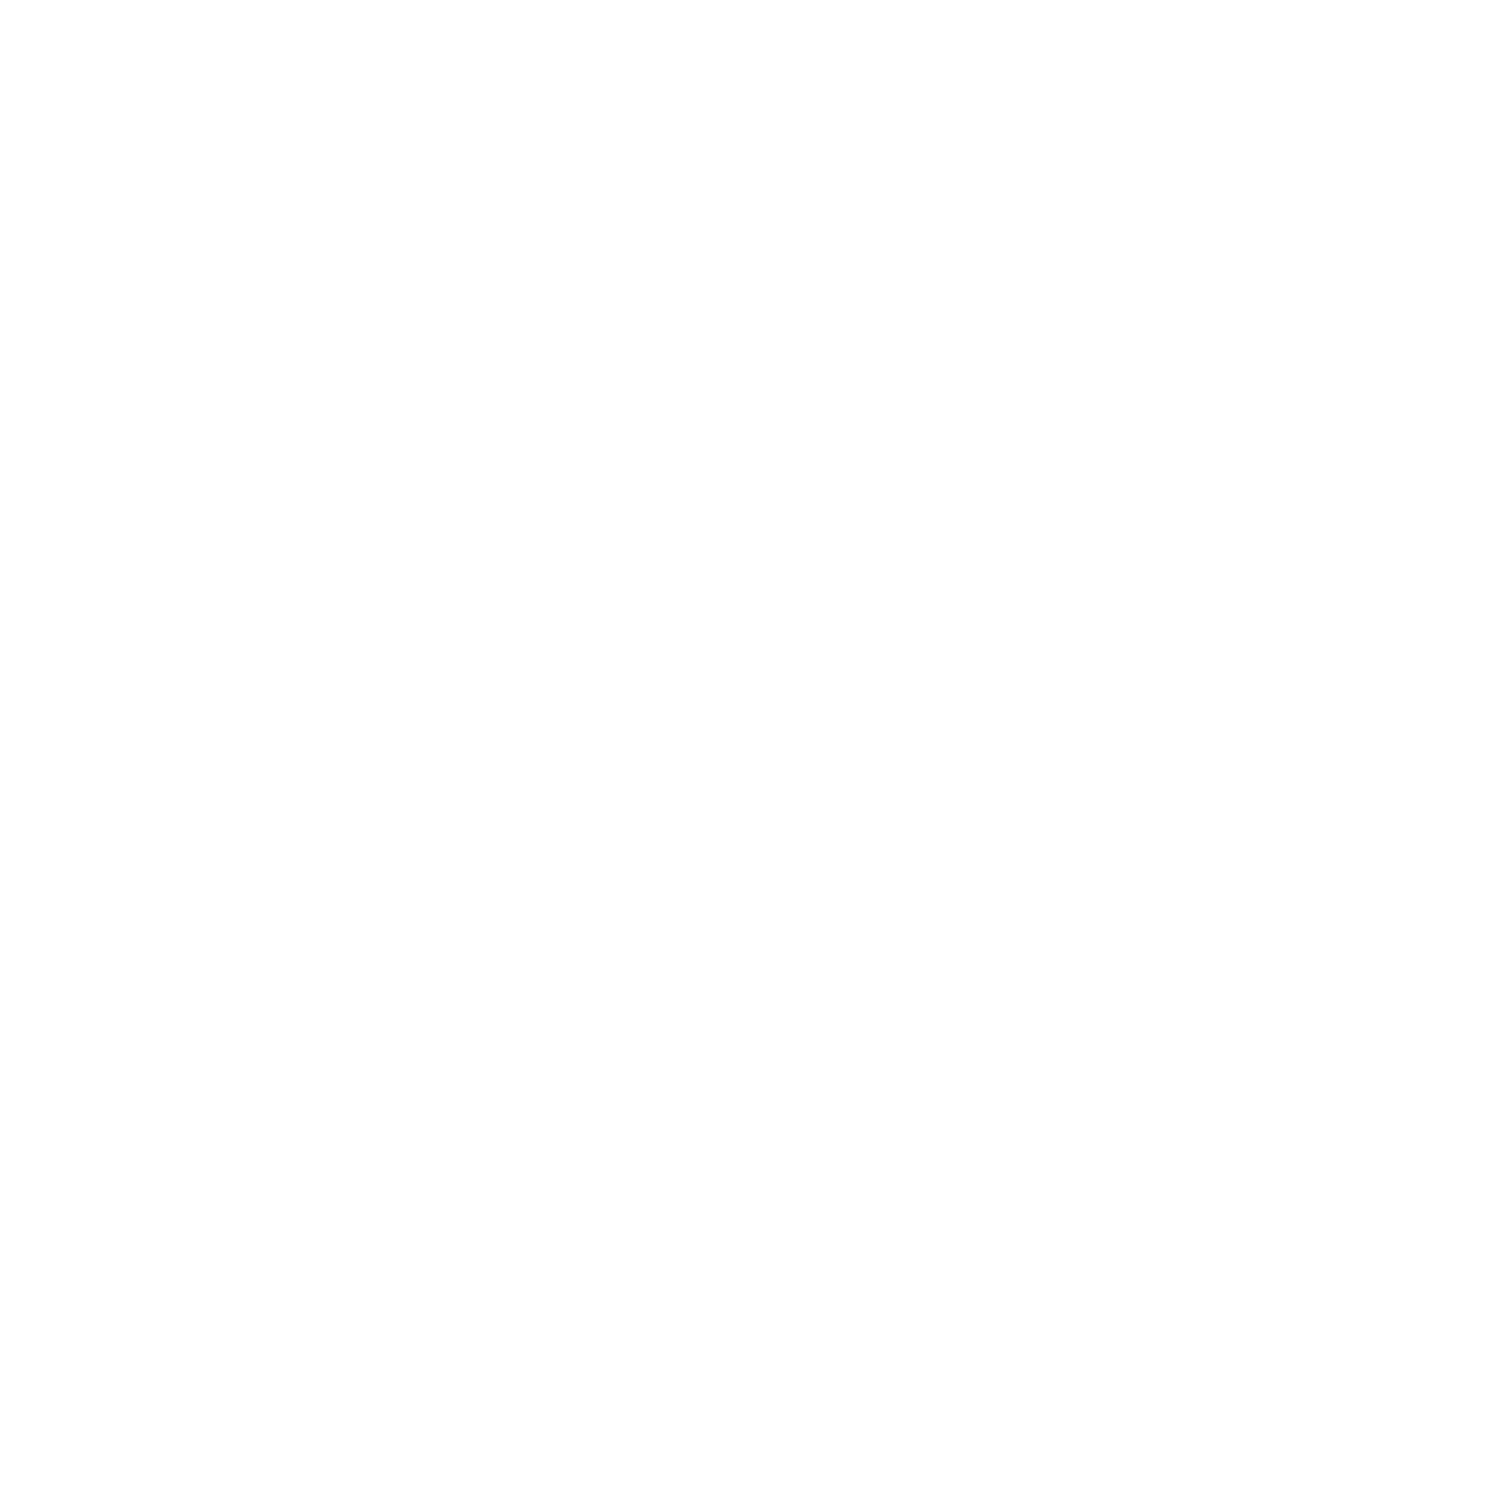 CPD Photography